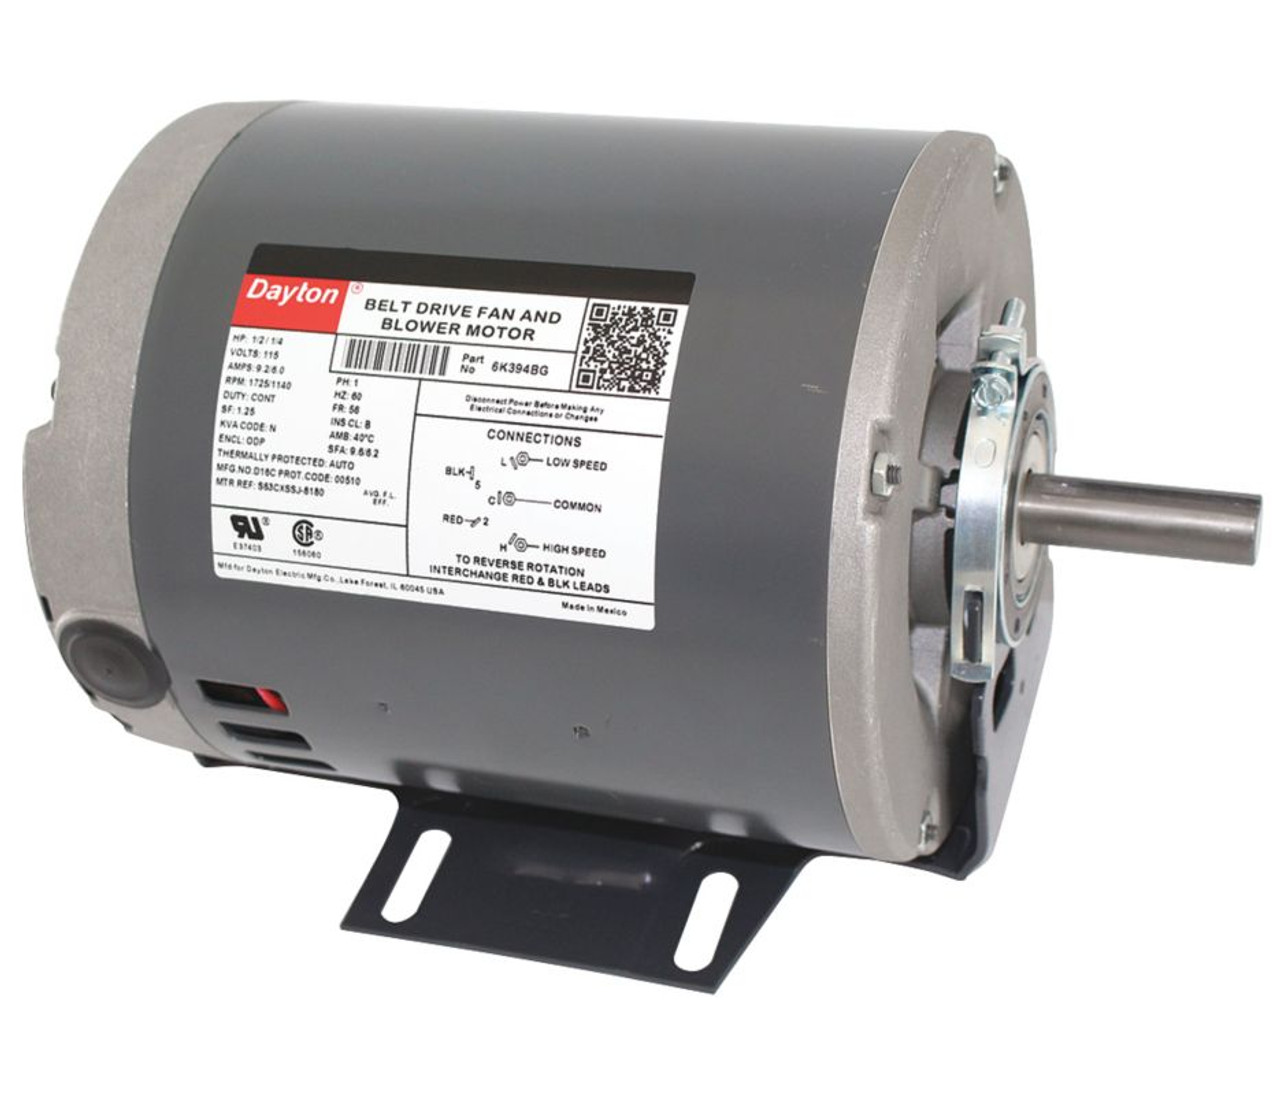 1 2 hp 1725 rpm 2 speed 115v whole house fan motor dayton 6k394 rh electricmotorwarehouse com Dayton Split Phase Motor Wiring Dayton Pump Wiring Diagram